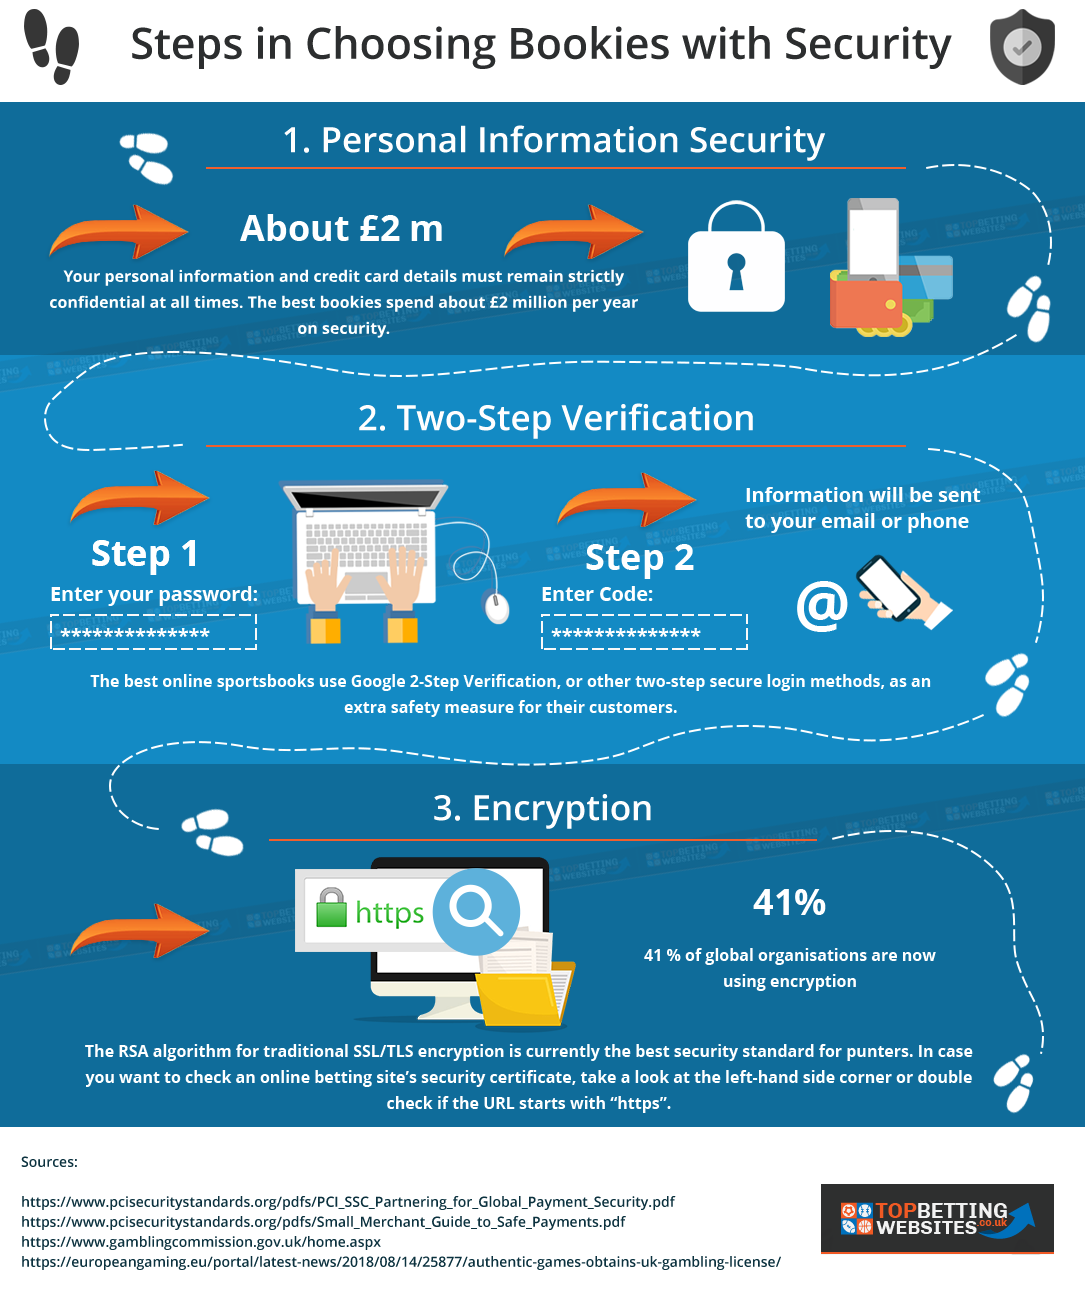 Infographic: How to choose secure bookies